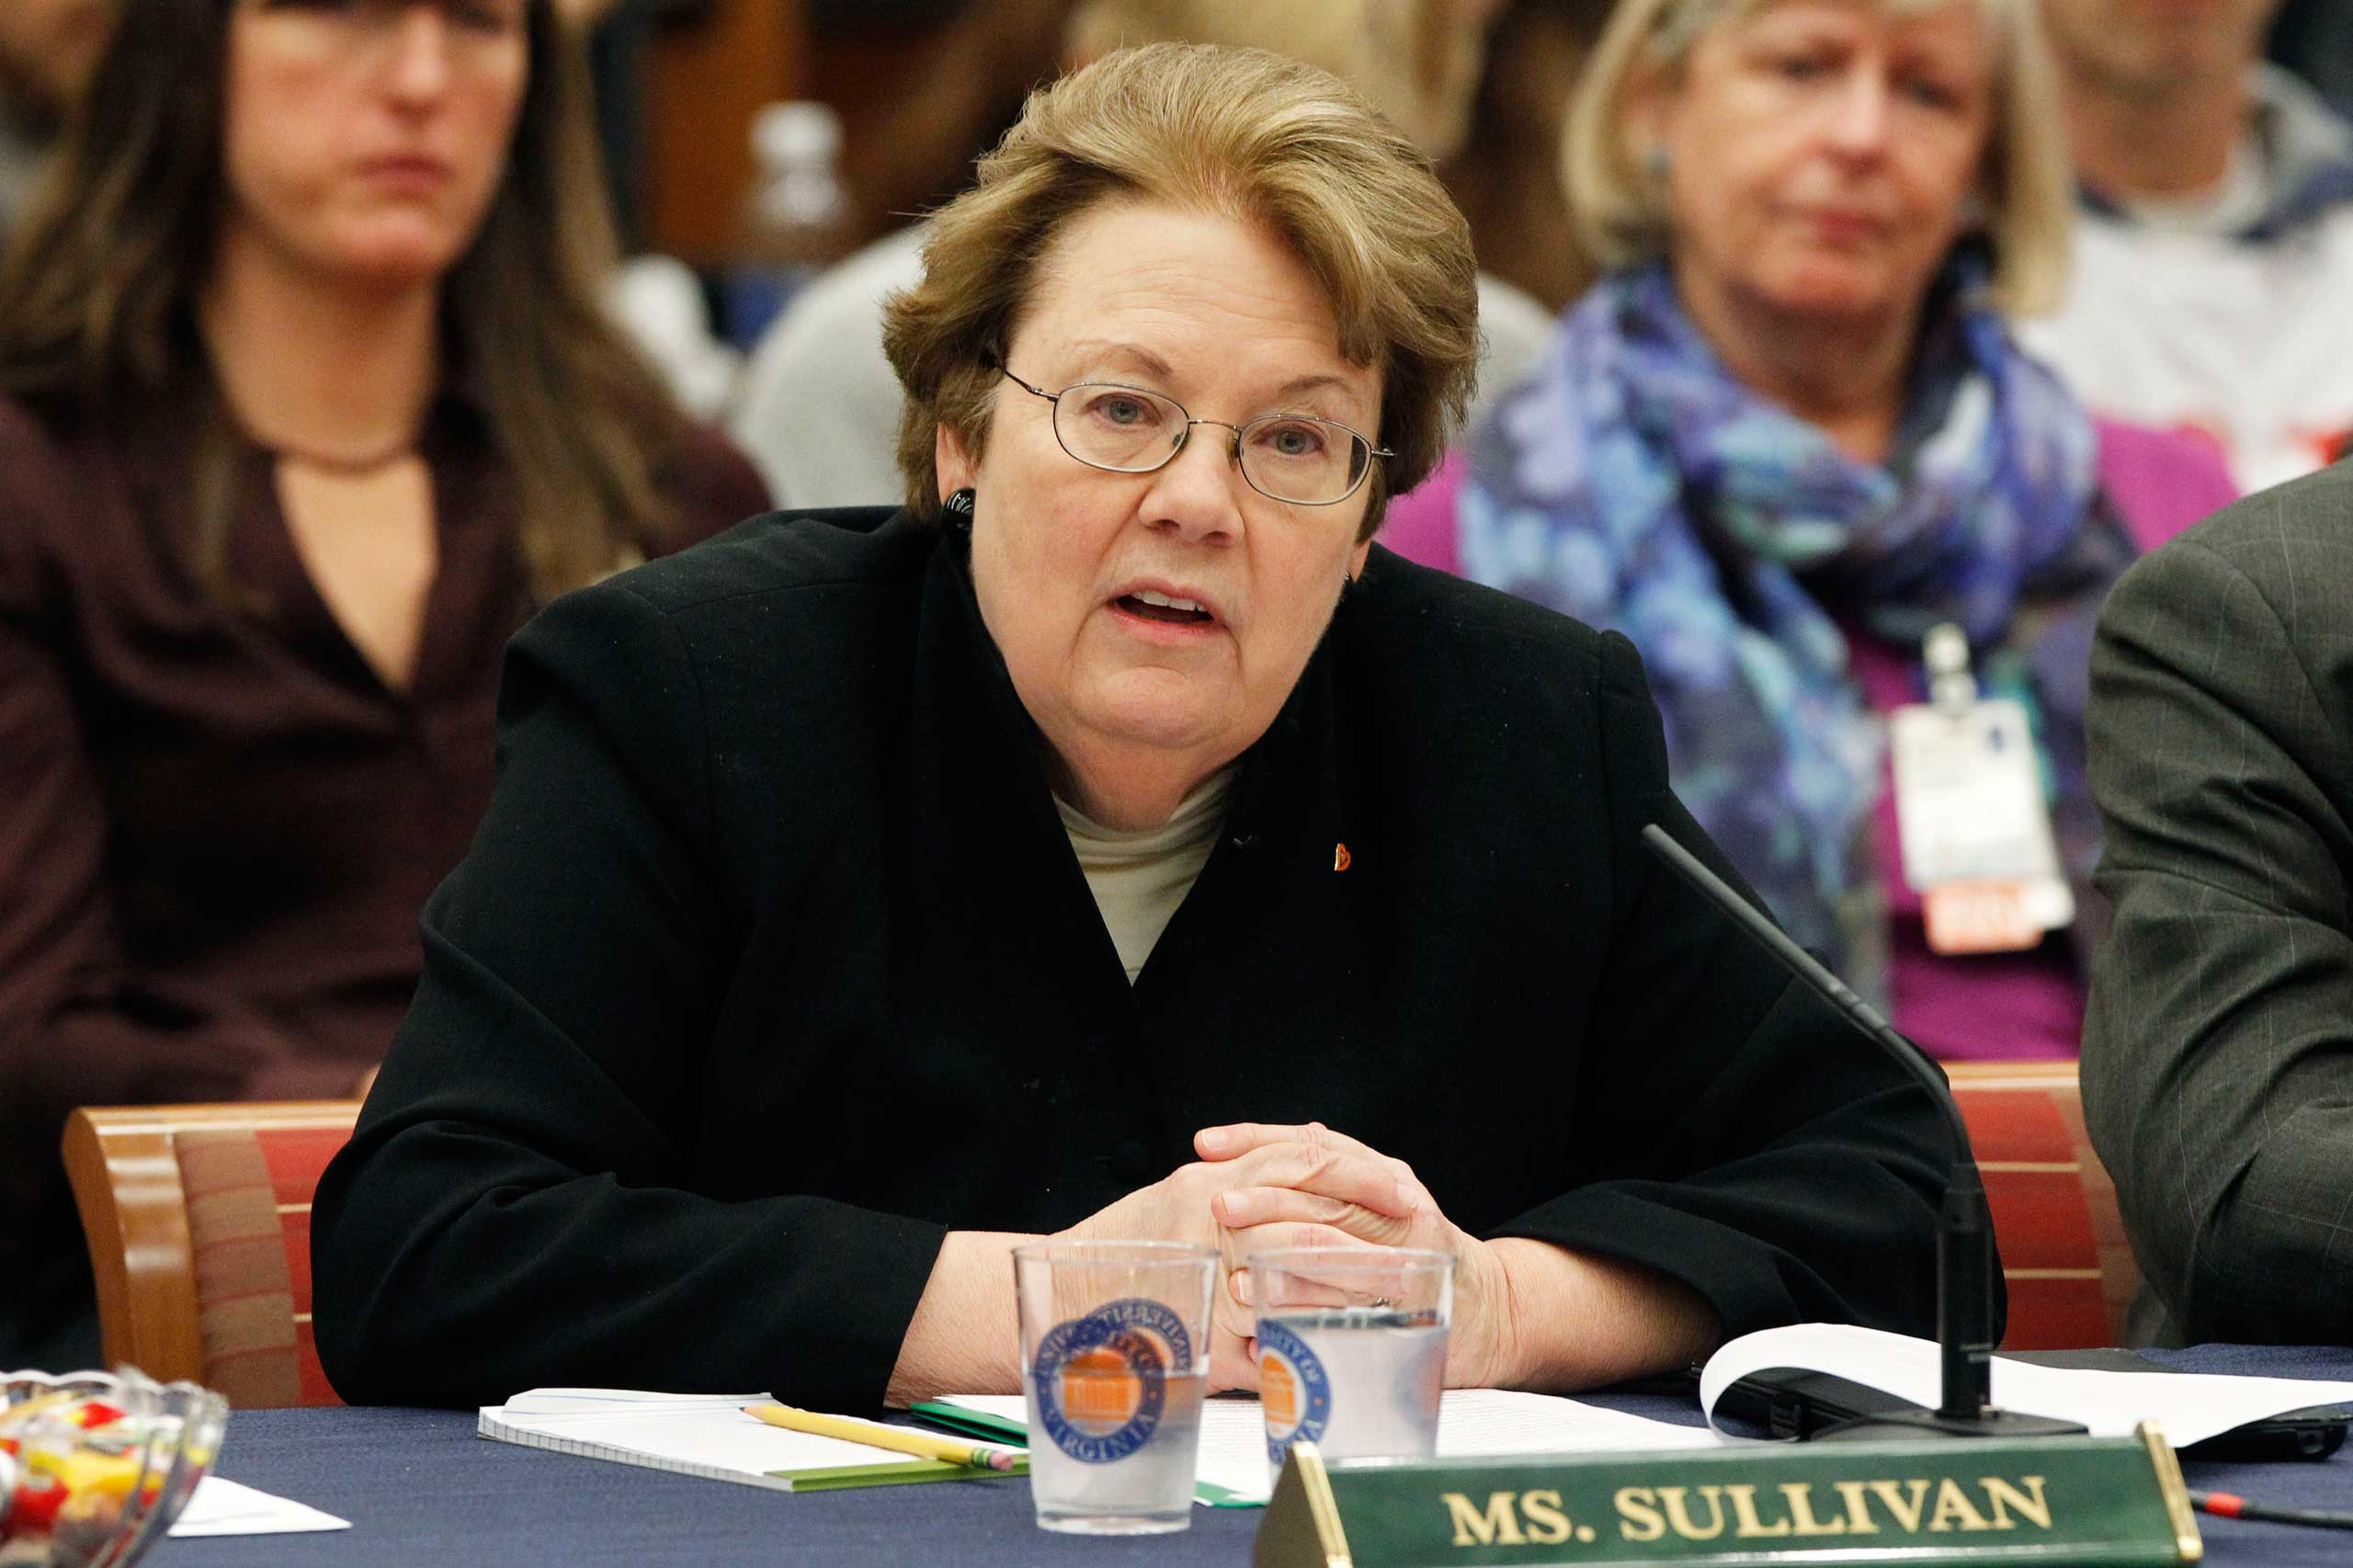 University President Teresa Sullivan speaks during a board of visitors meeting about sexual assault at the University of Virginia in Charlottesville, Va. on Nov. 25, 2014.